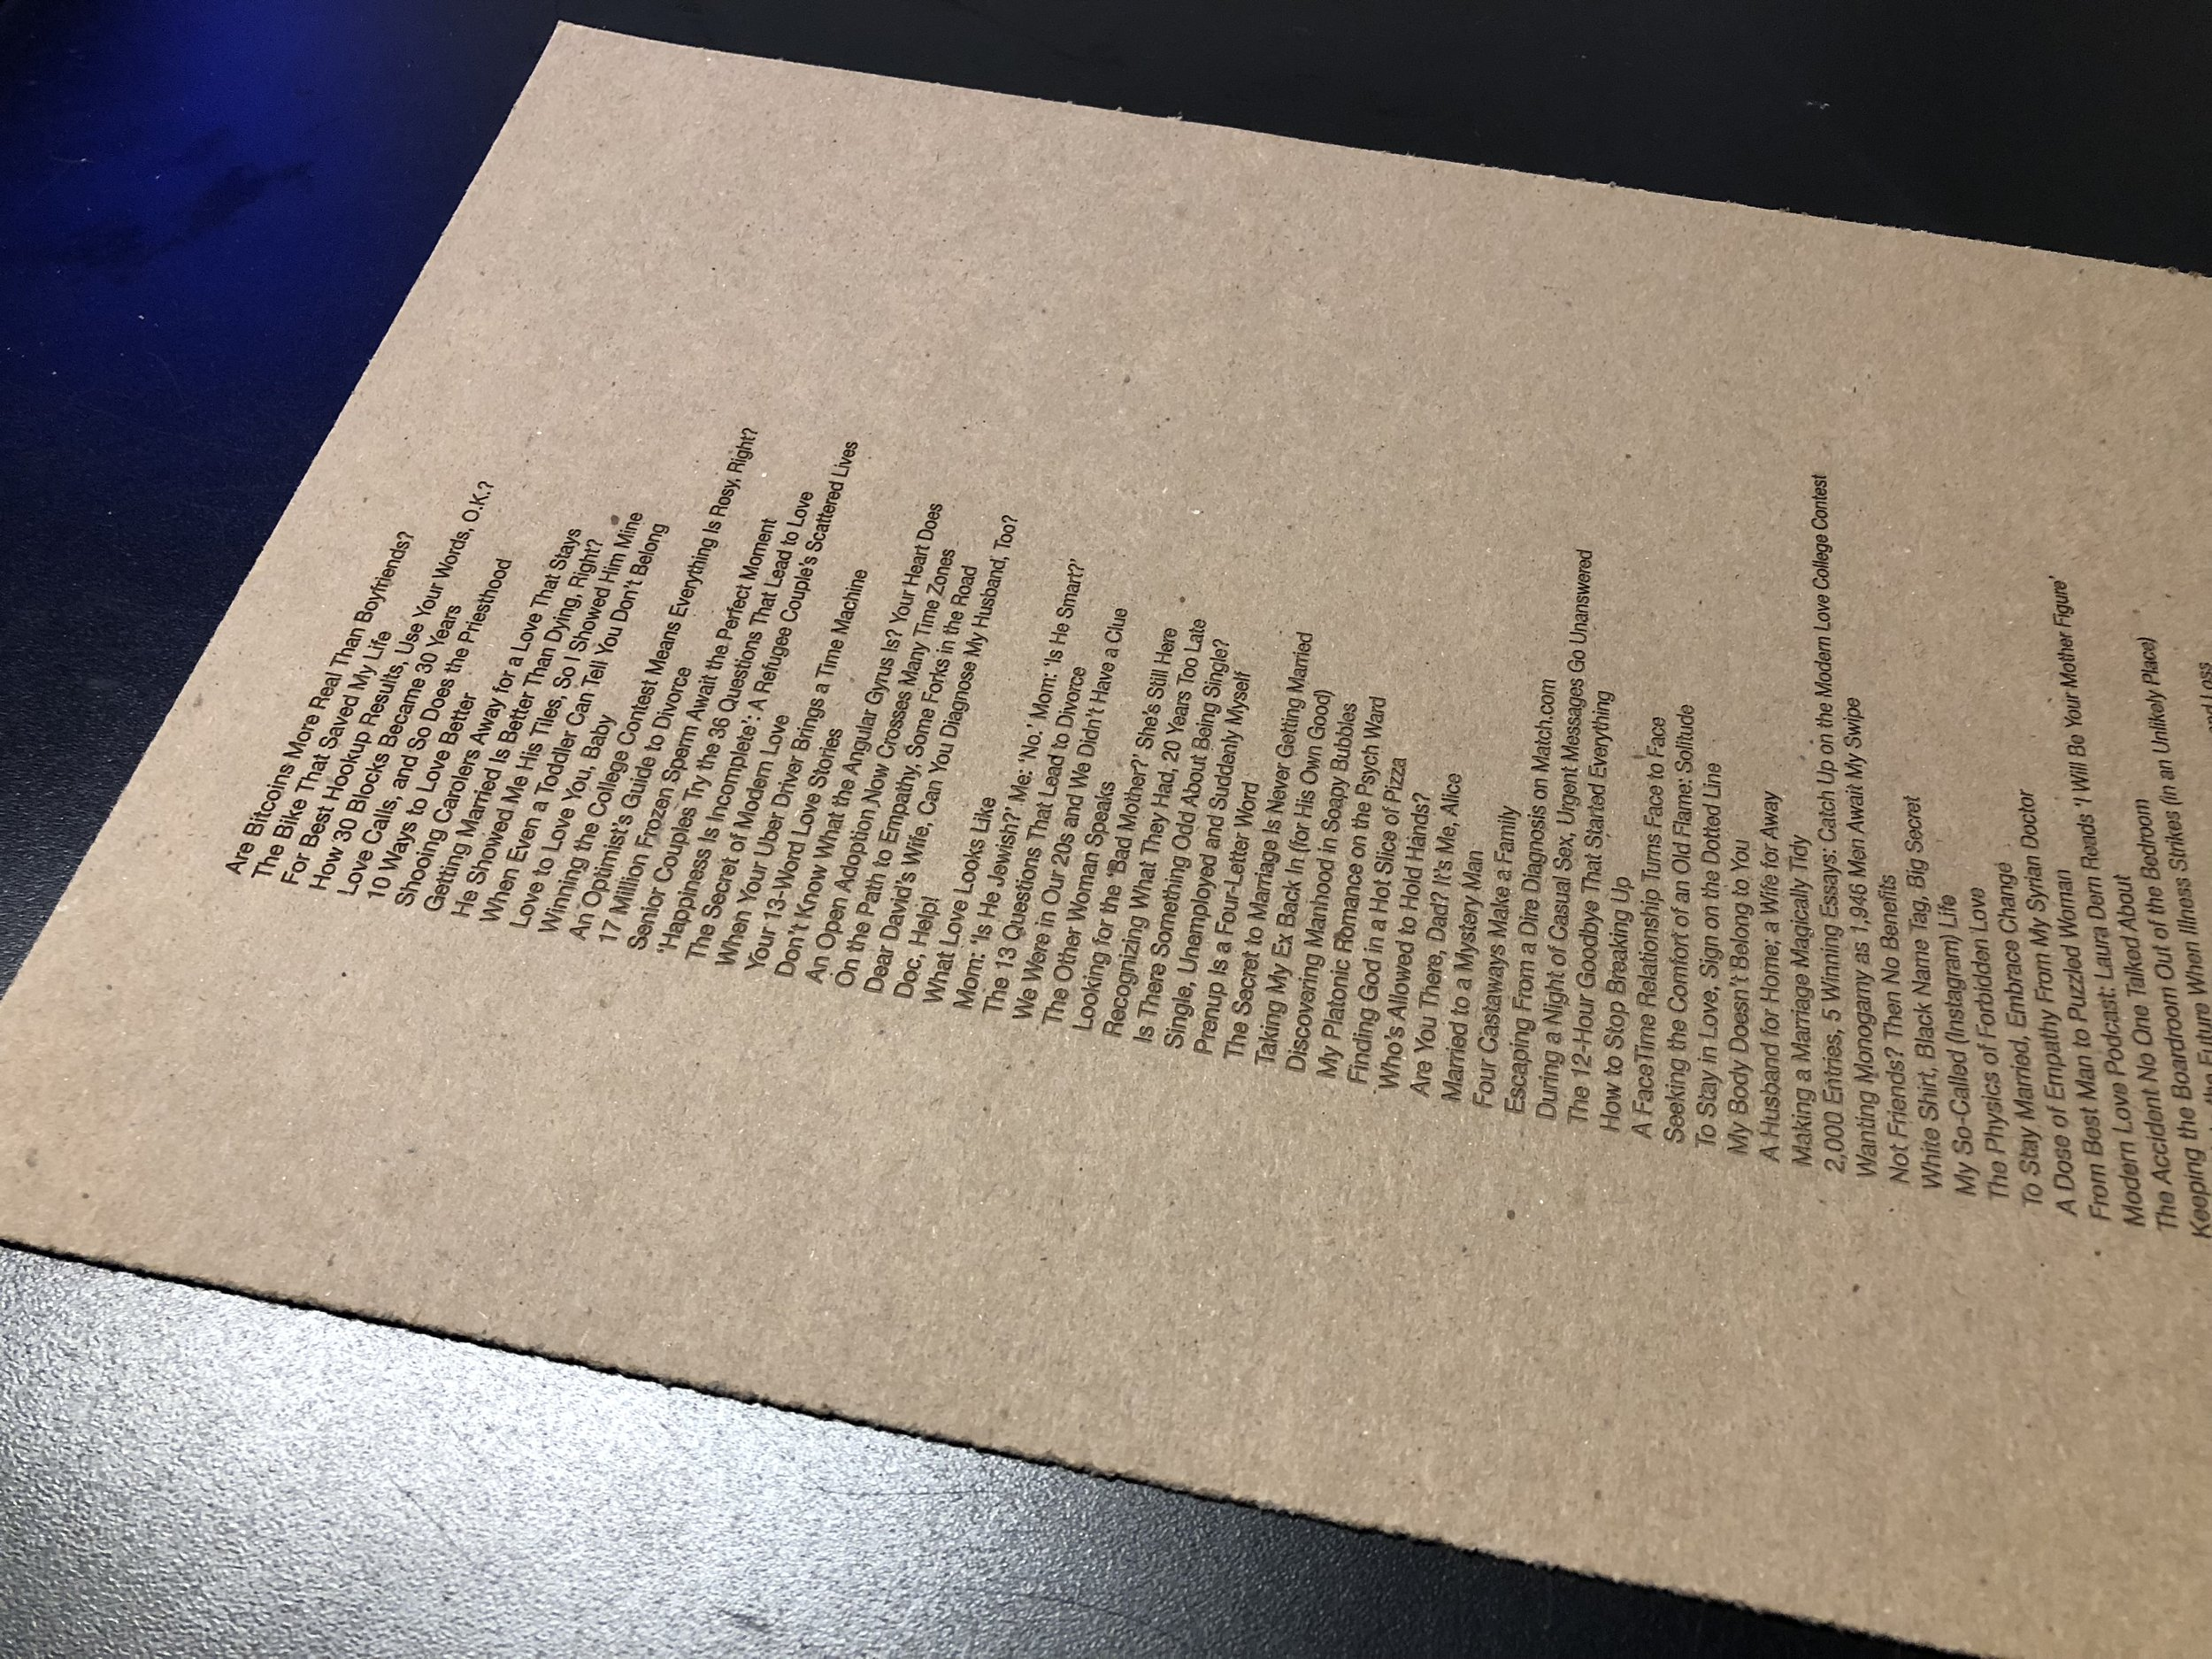 Real Modern Love headlines laser-printed on cardboard as an artifact of real stories told via the NY Times.